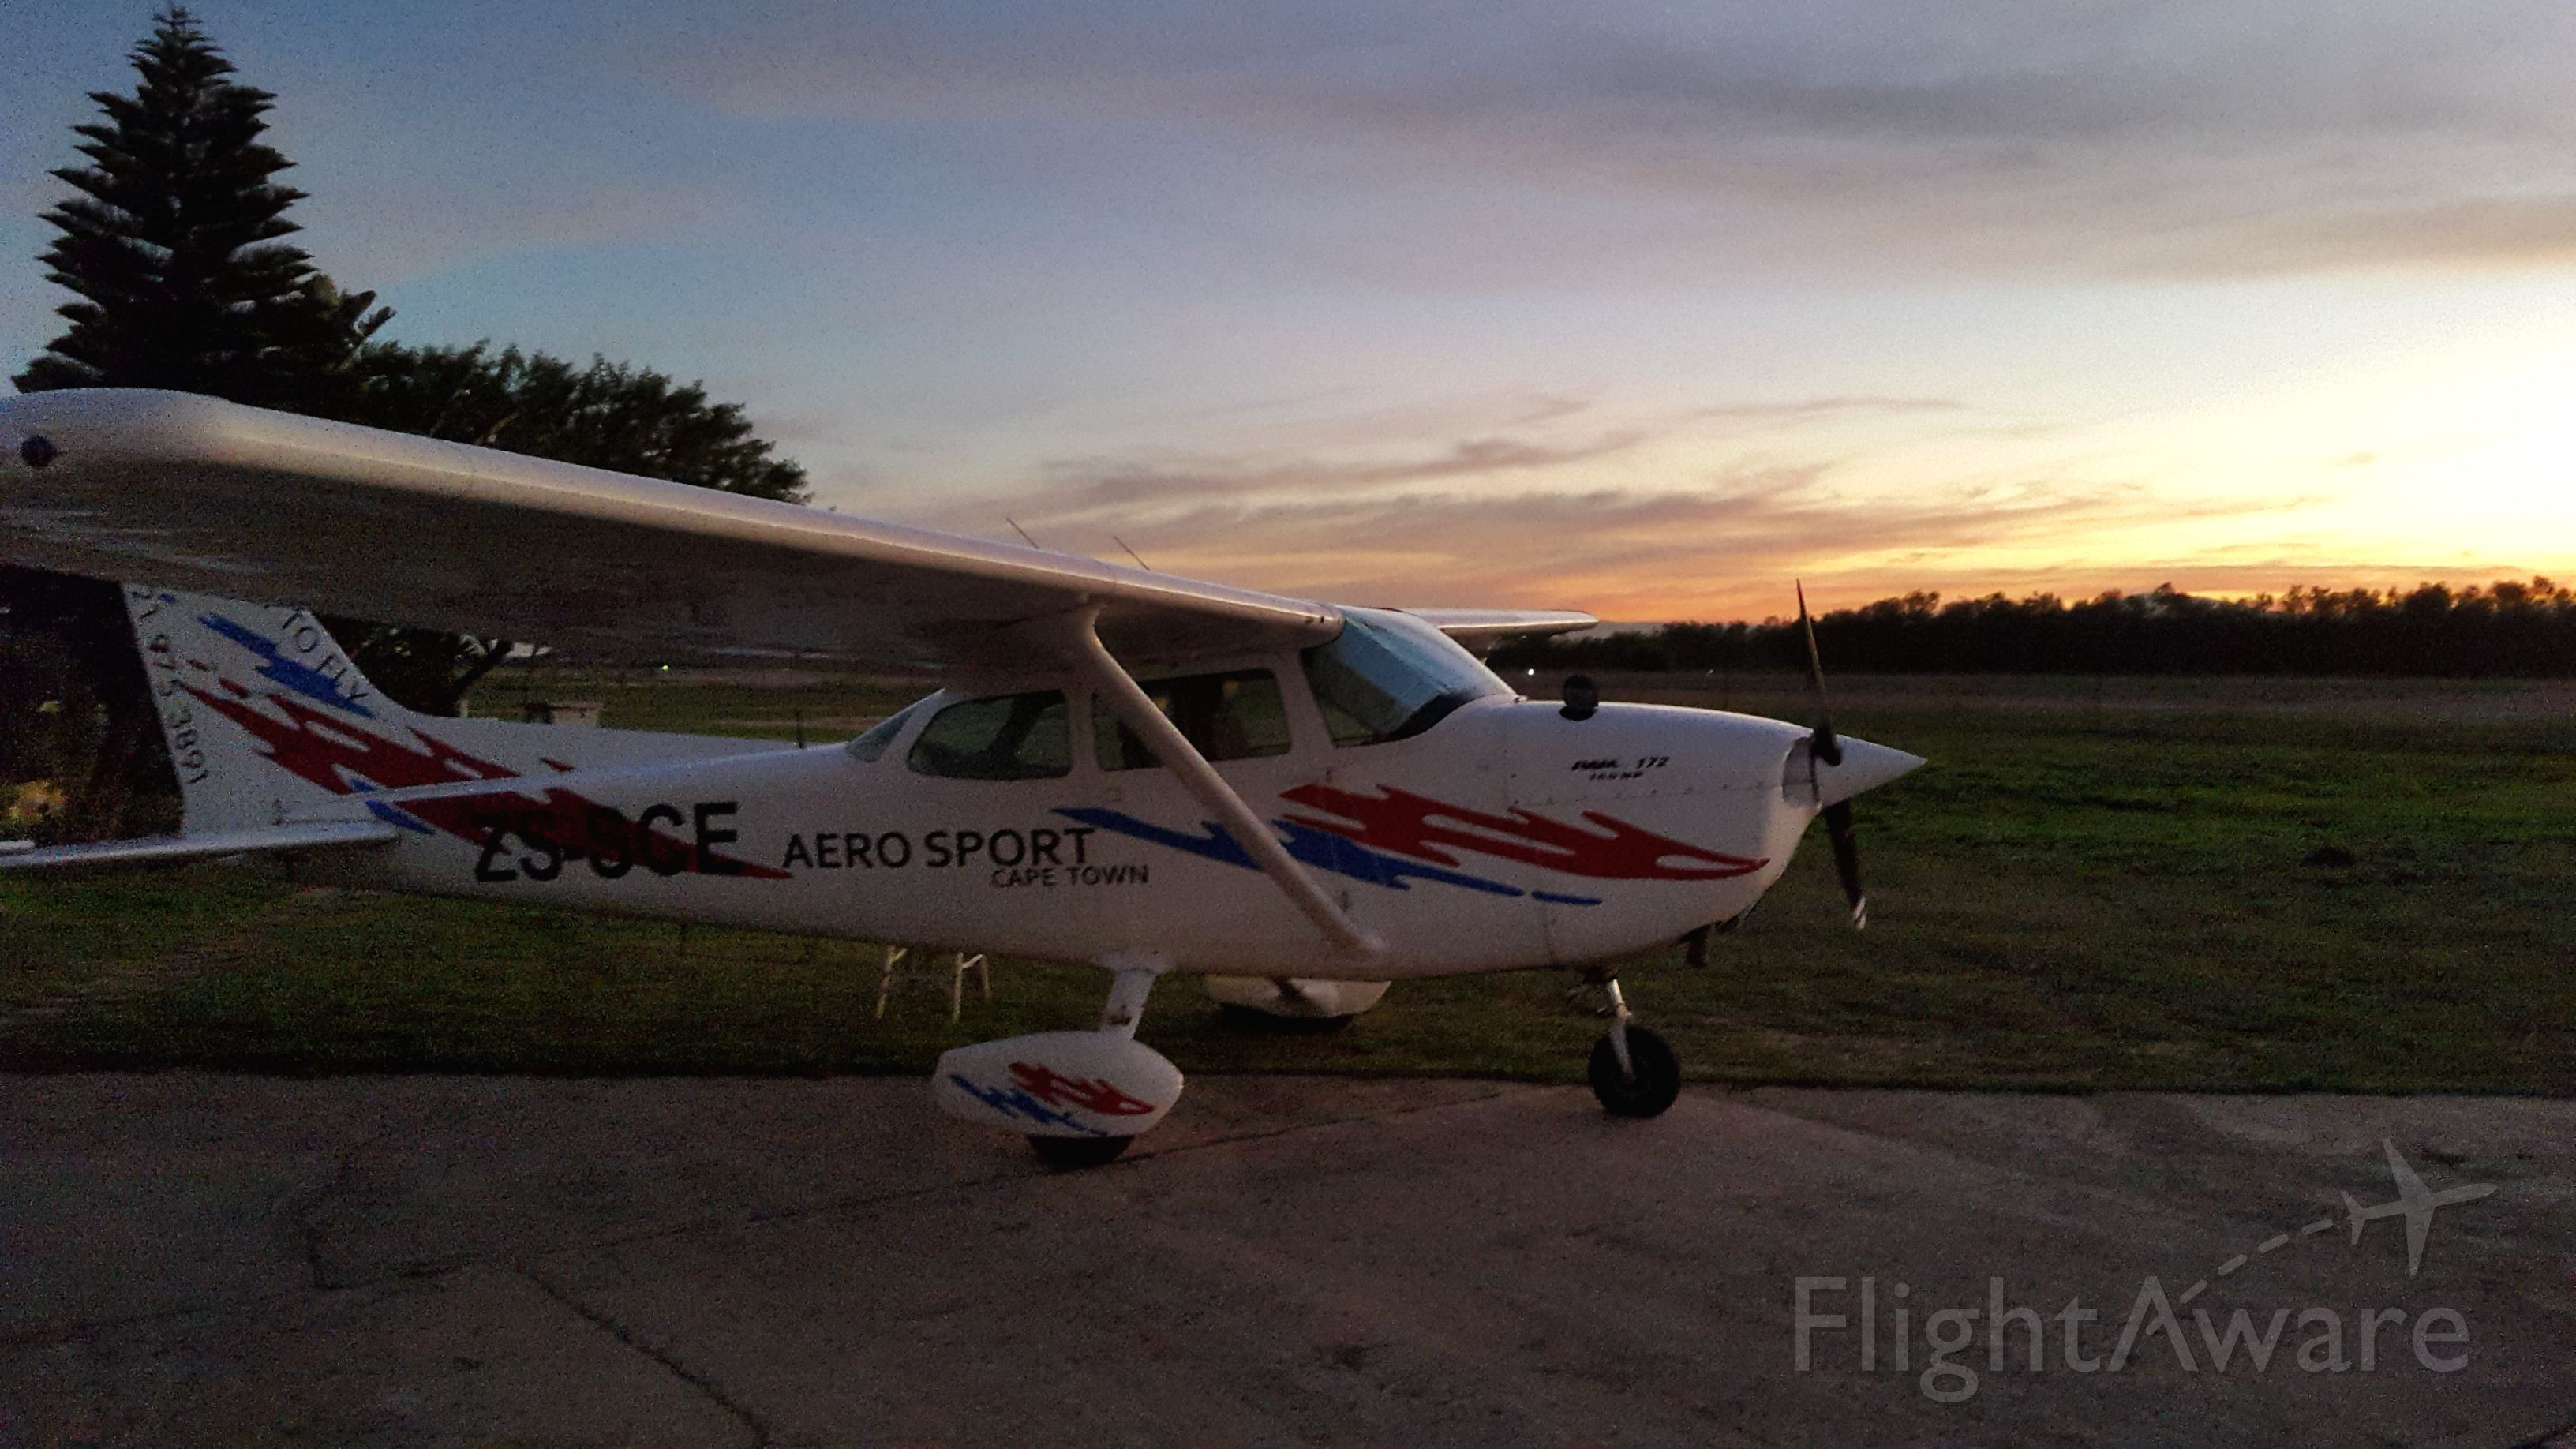 Cessna Skyhawk (ZS-SCE) - pre-fligthing for a night nav at the Cape of Good Hope